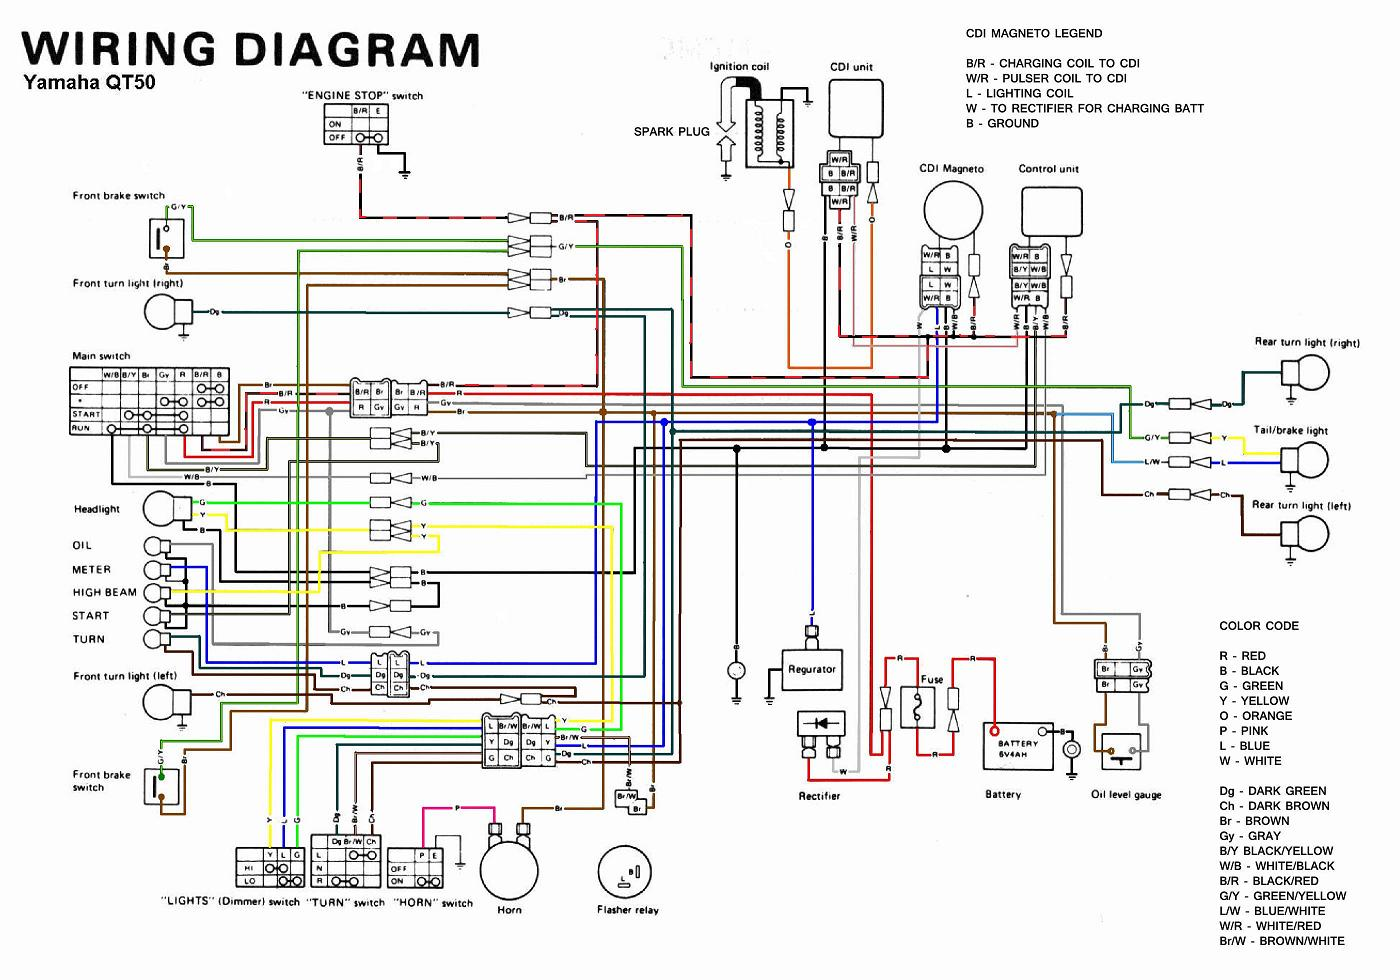 Ke175 Wiring Diagram Free For You Z1000 Kawasaki Kz400 1978 Ke 175 Parts